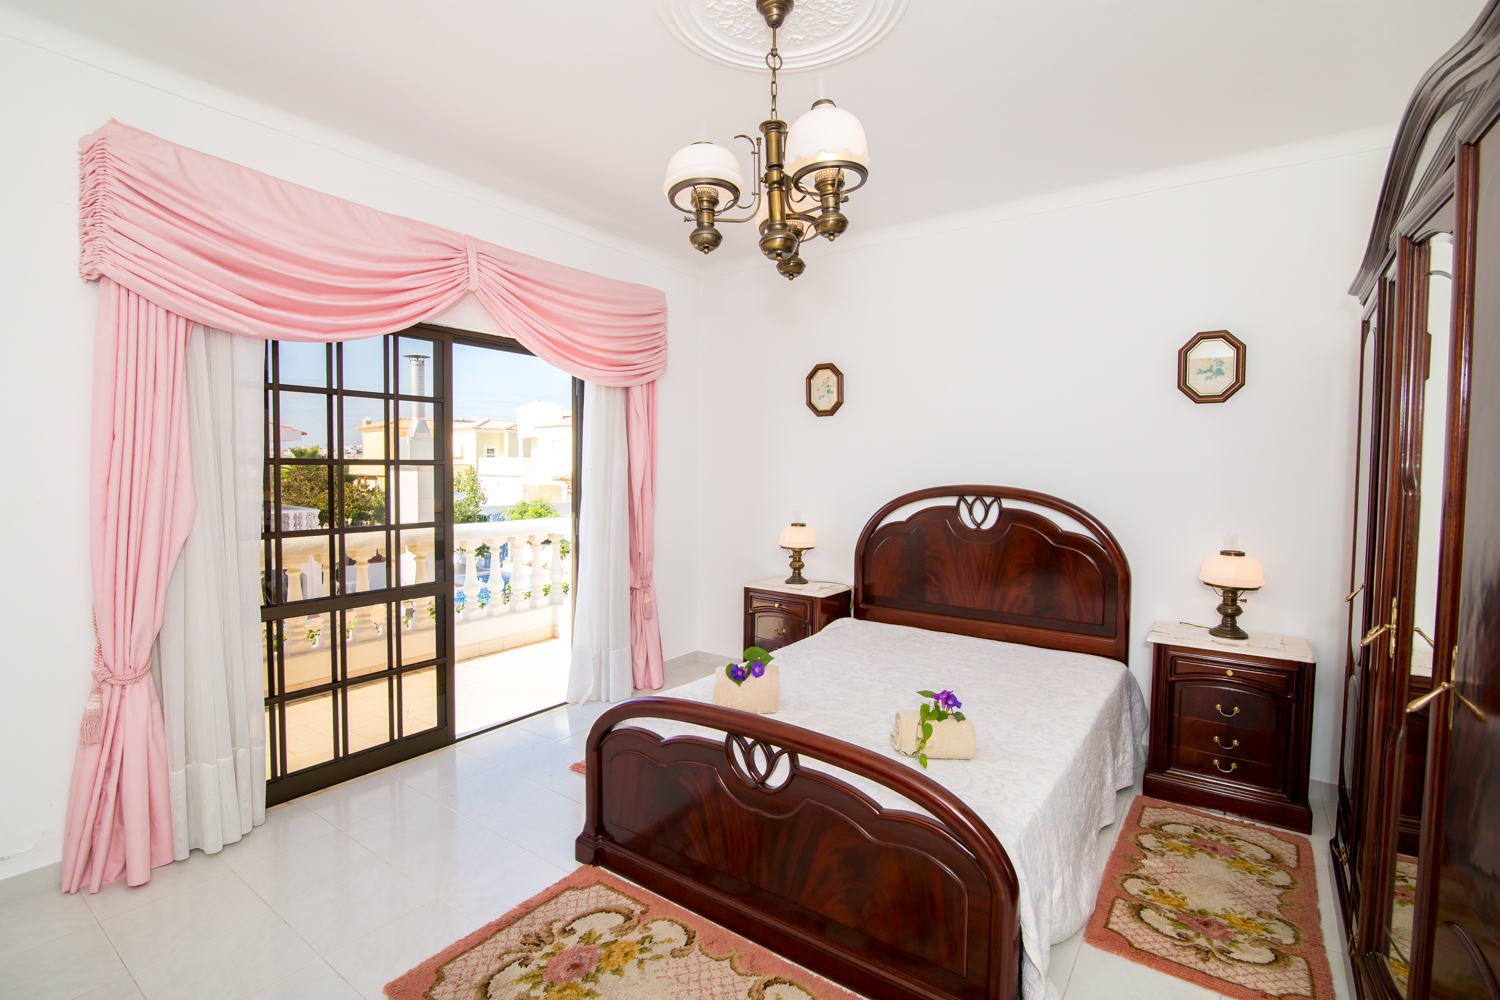 2nd floor double bedroom also with terrace with picturesque resort & sea views.